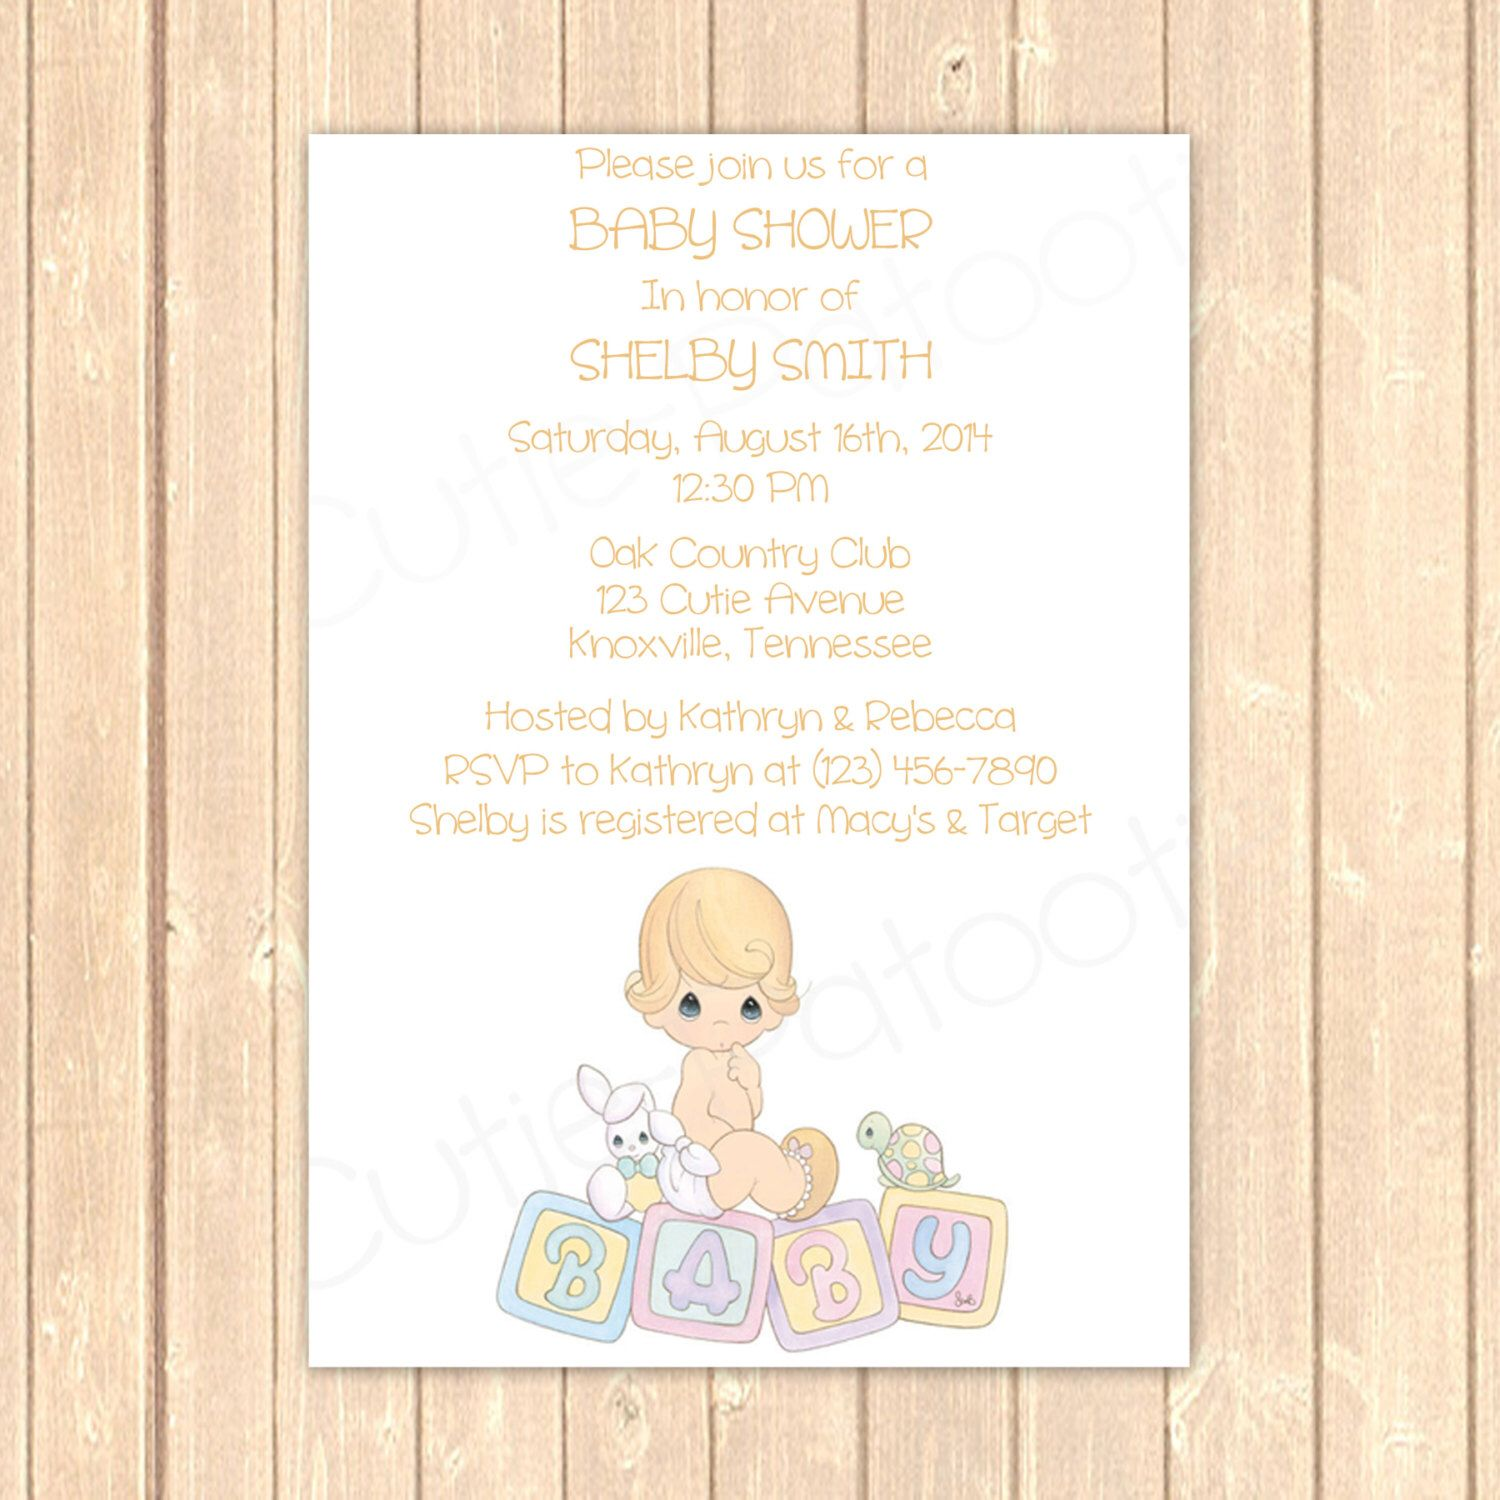 Precious Moments Baby Shower Invitation Personalized Pdf And Jpeg File By Cutiepatootieroomie On Etsy Https